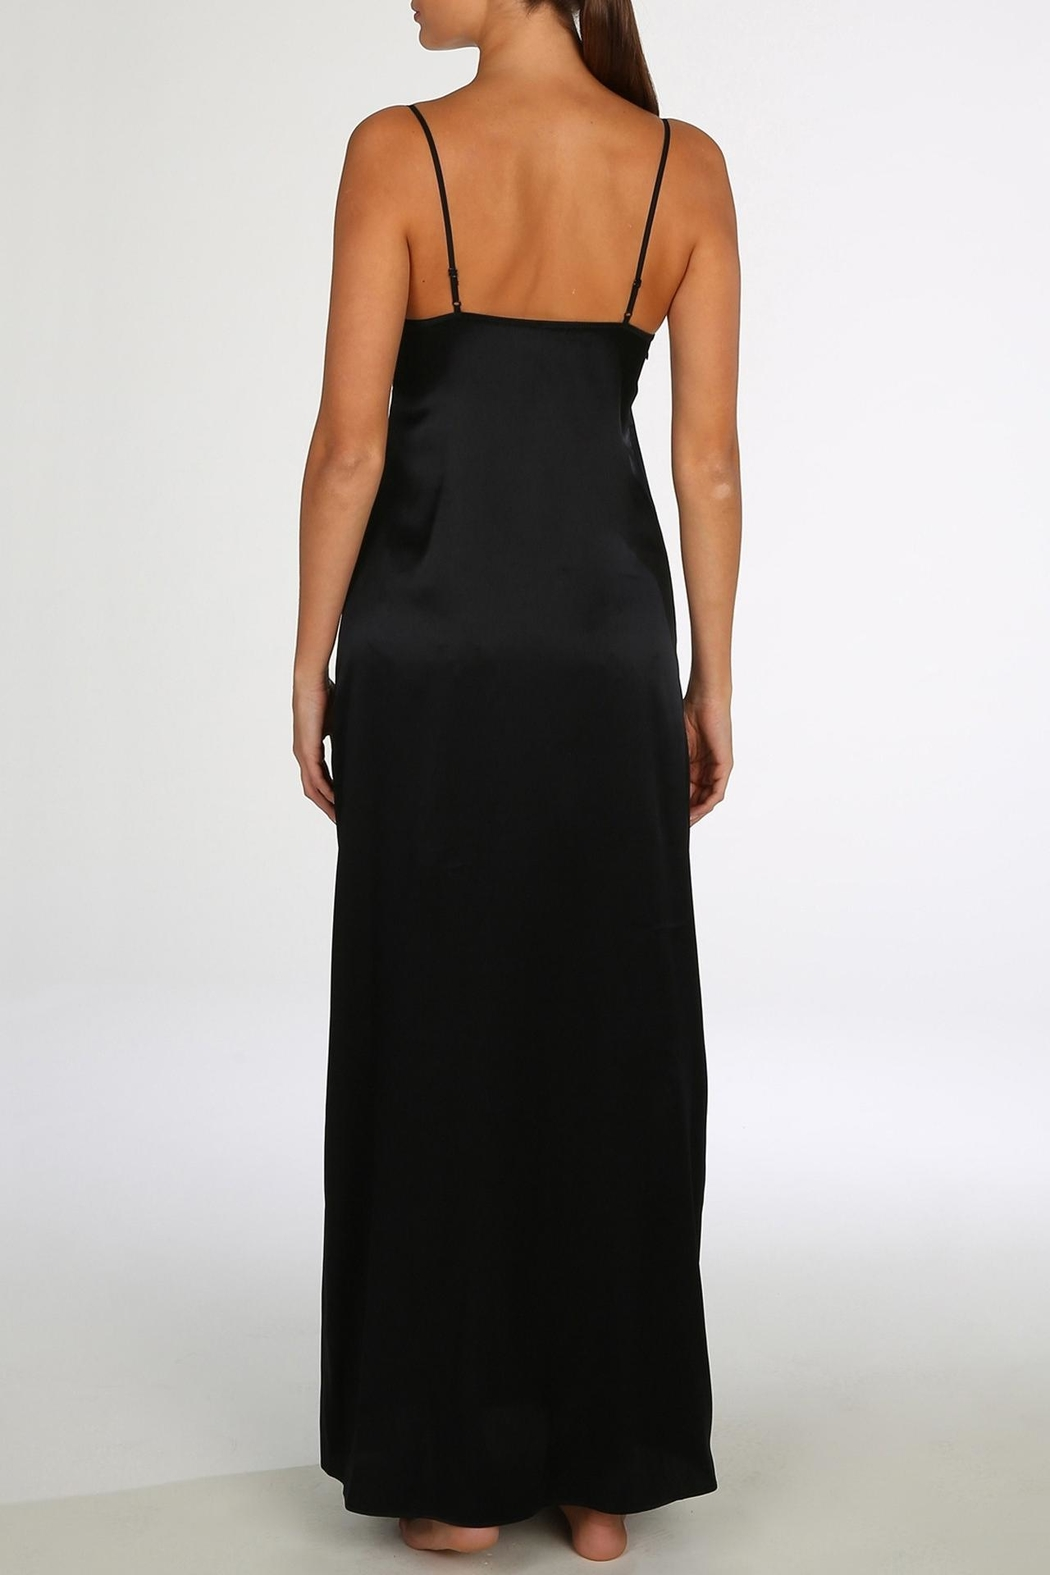 Marie Jo Precious Silk Gown - Side Cropped Image